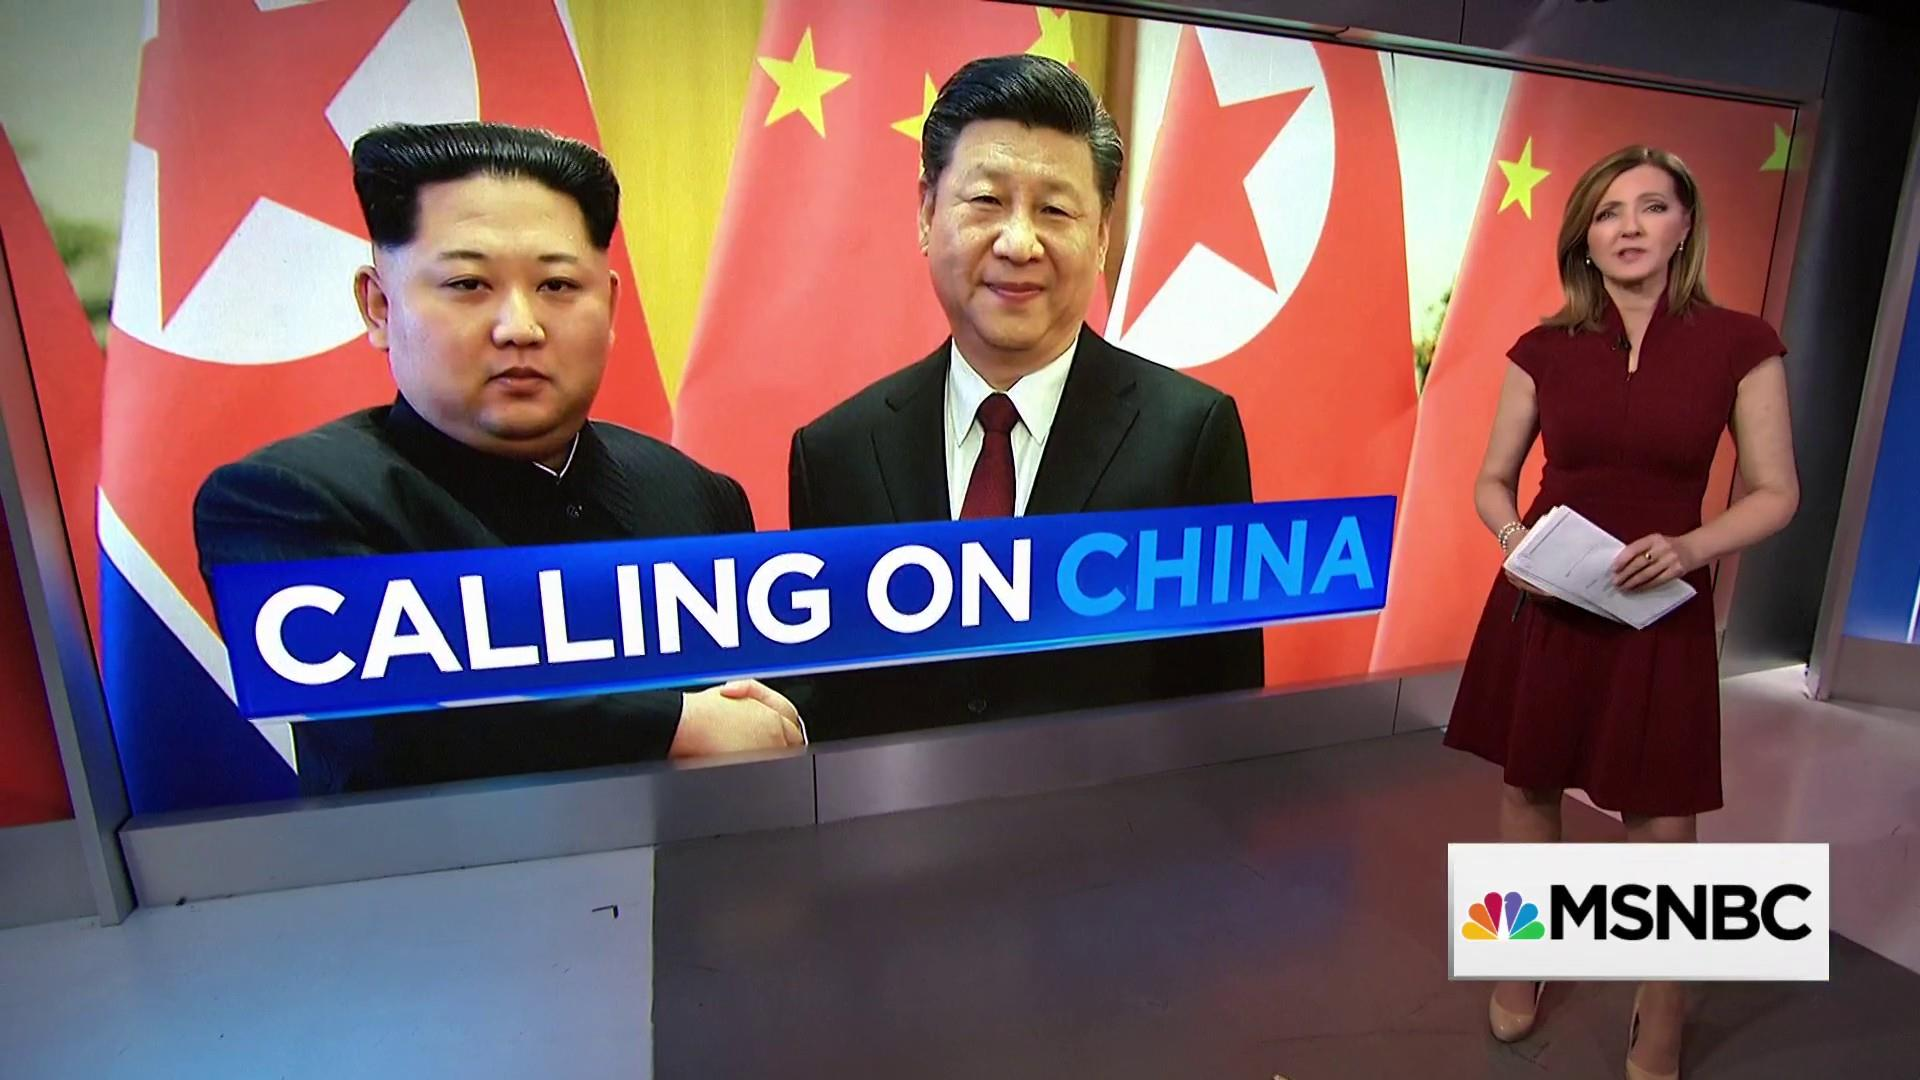 Here's why Kim Jong Un's meeting with Xi Jinping is so important